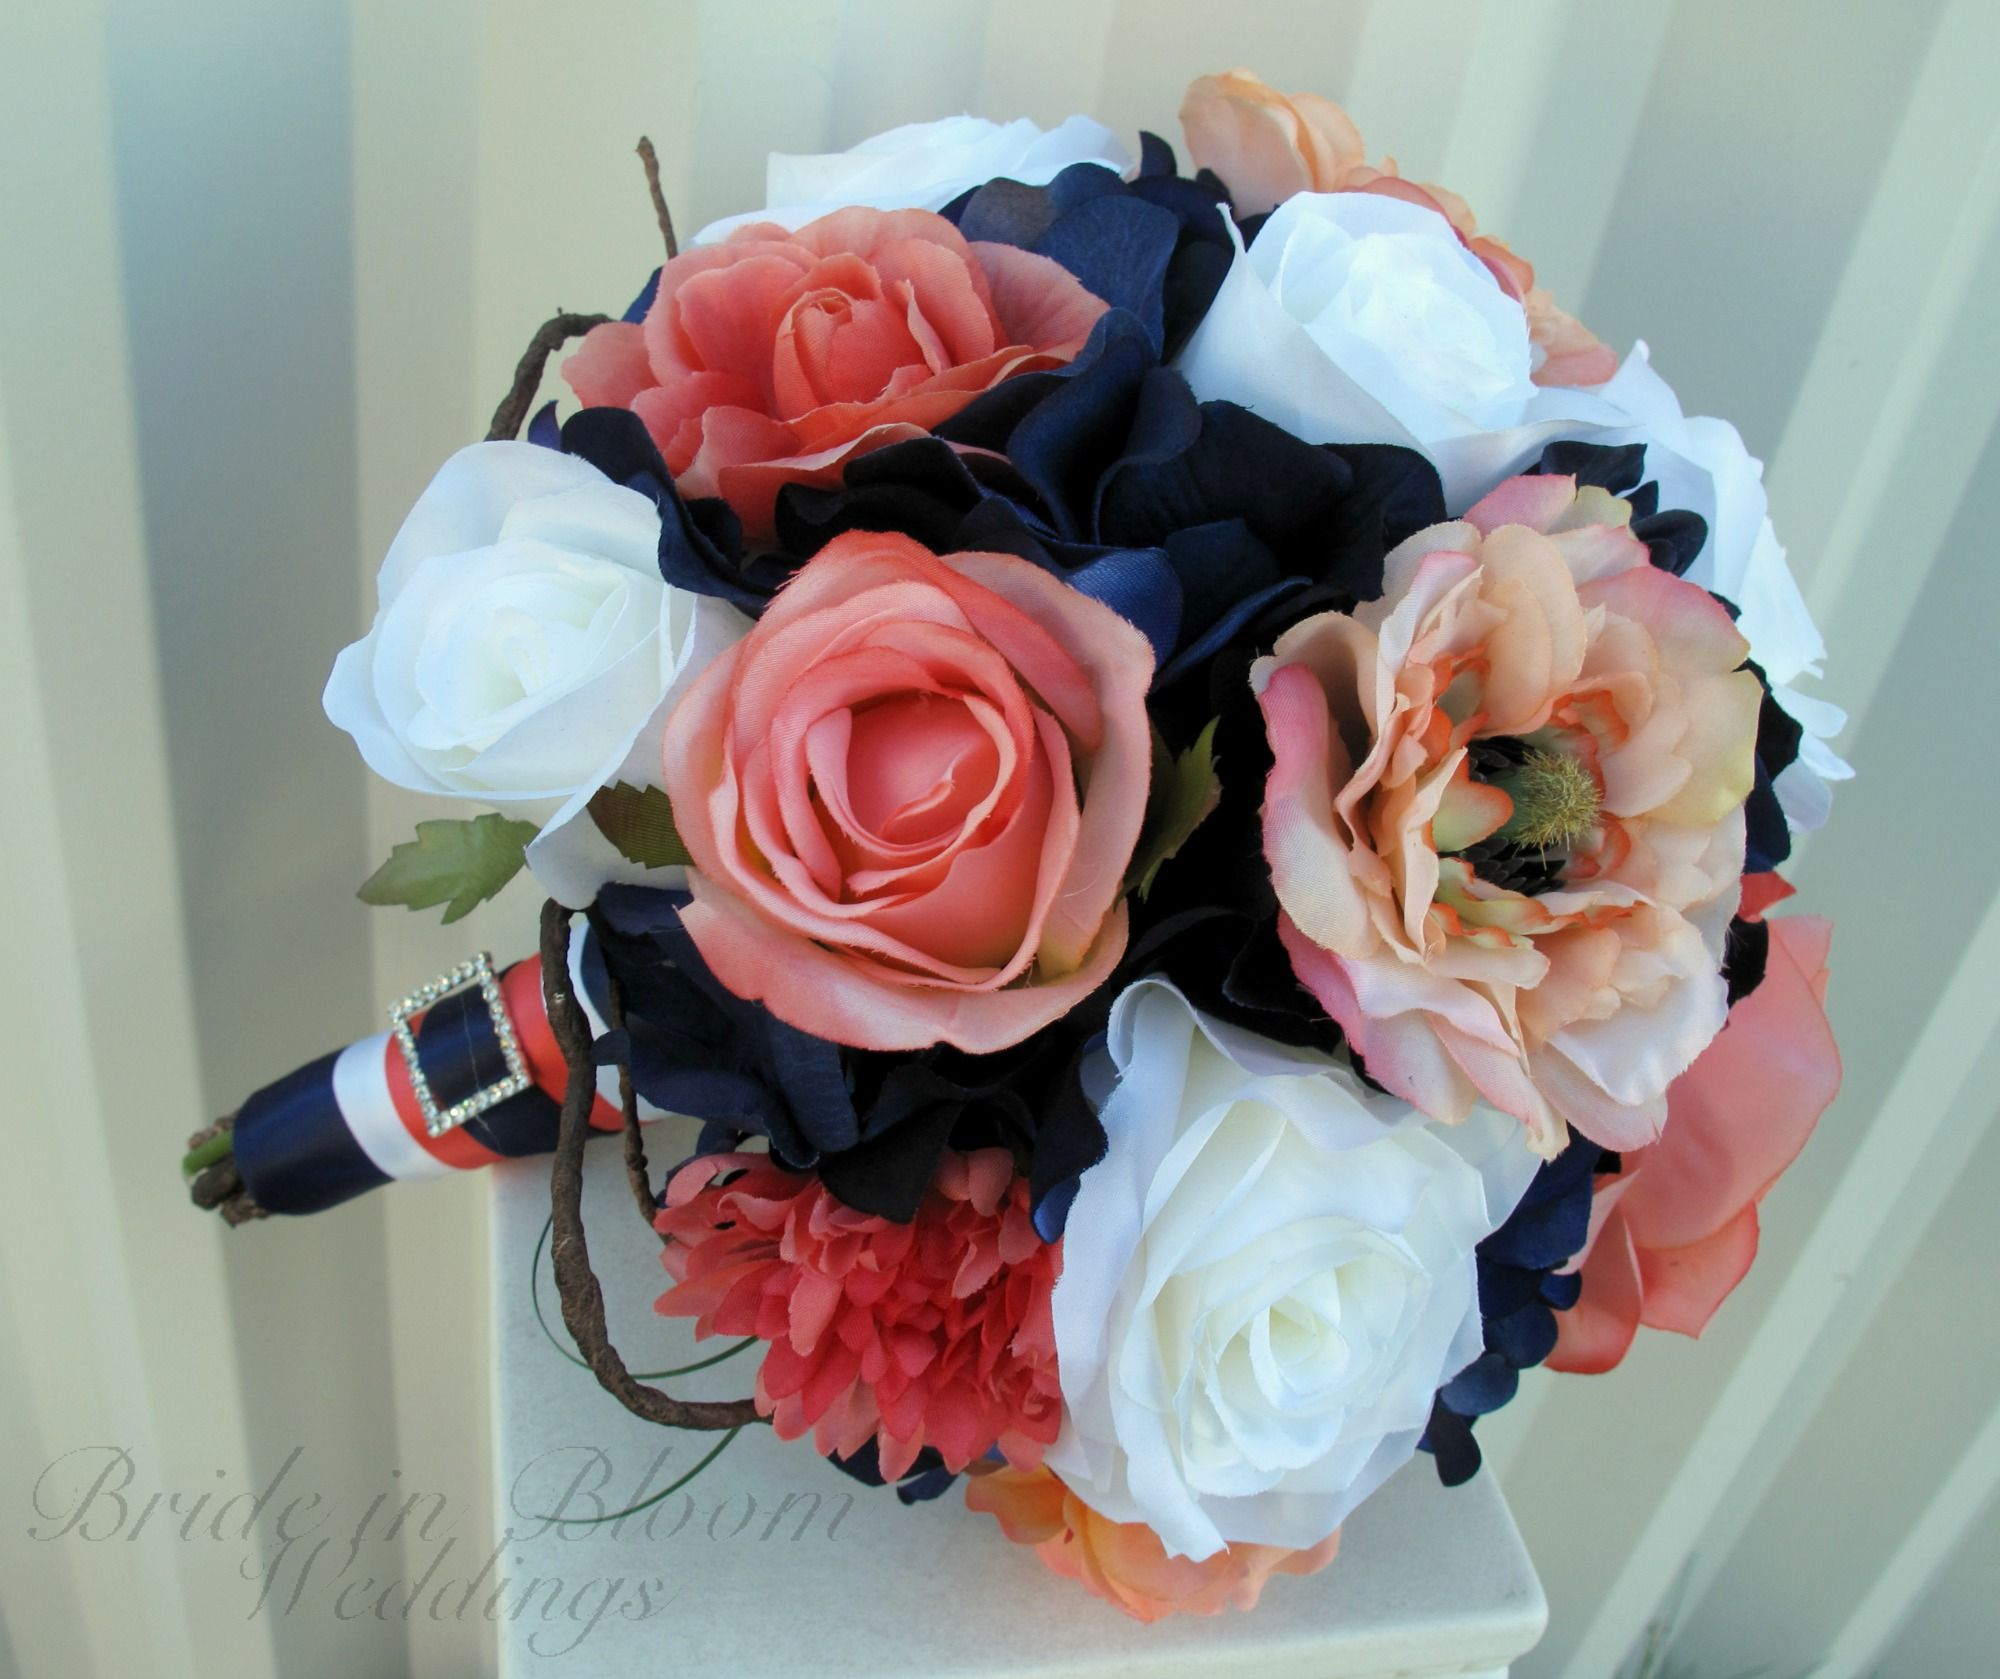 Wedding Bouquet Coral Navy White Rose Silk Bridal Flowers Curly